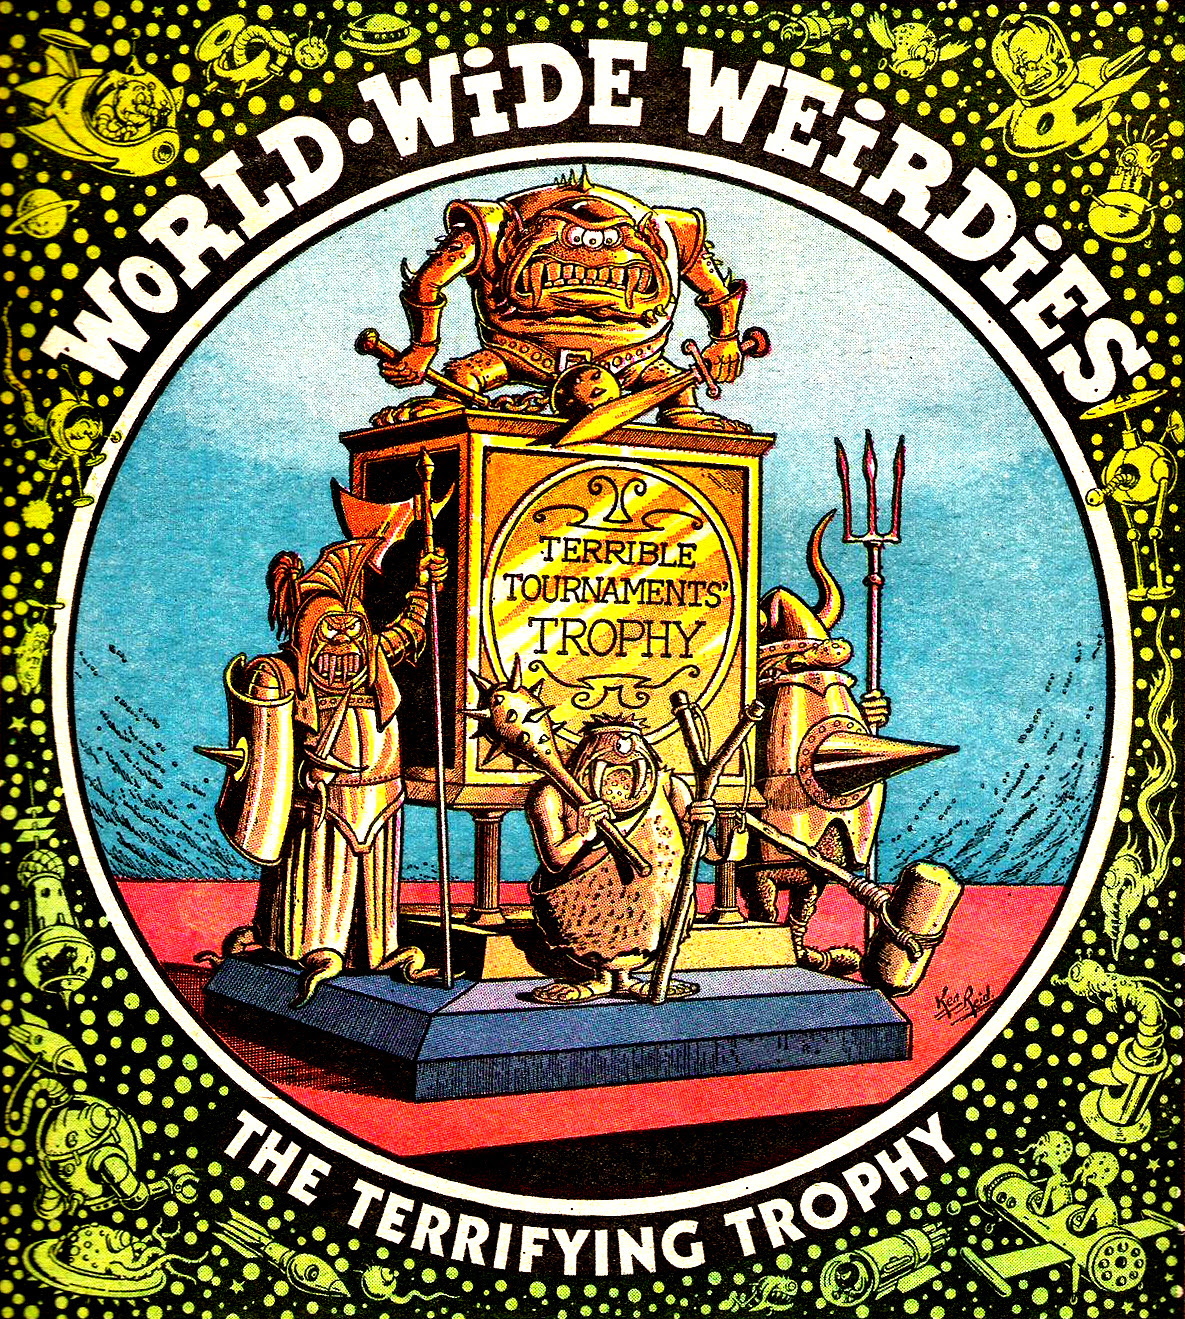 Ken Reid - World Wide Weirdies 45